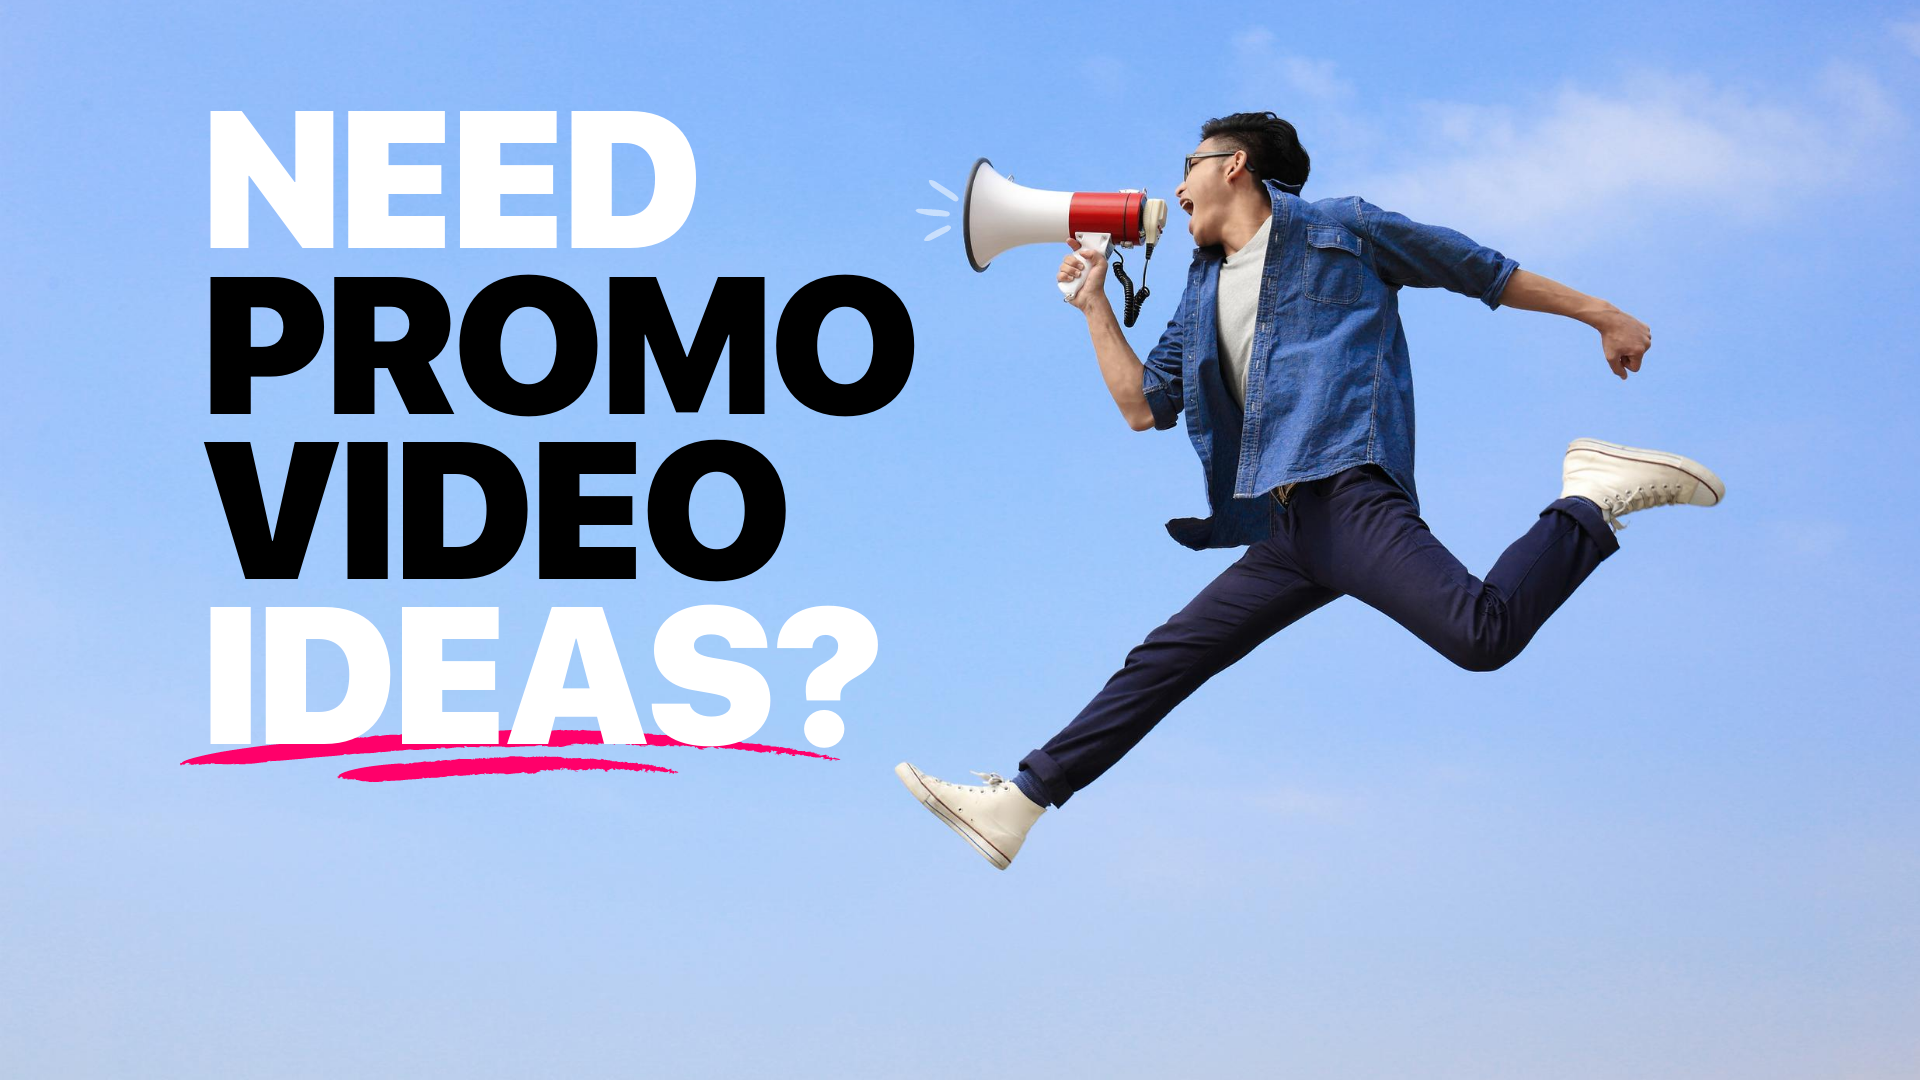 How Do You Find Great Promo Video Ideas That Work?